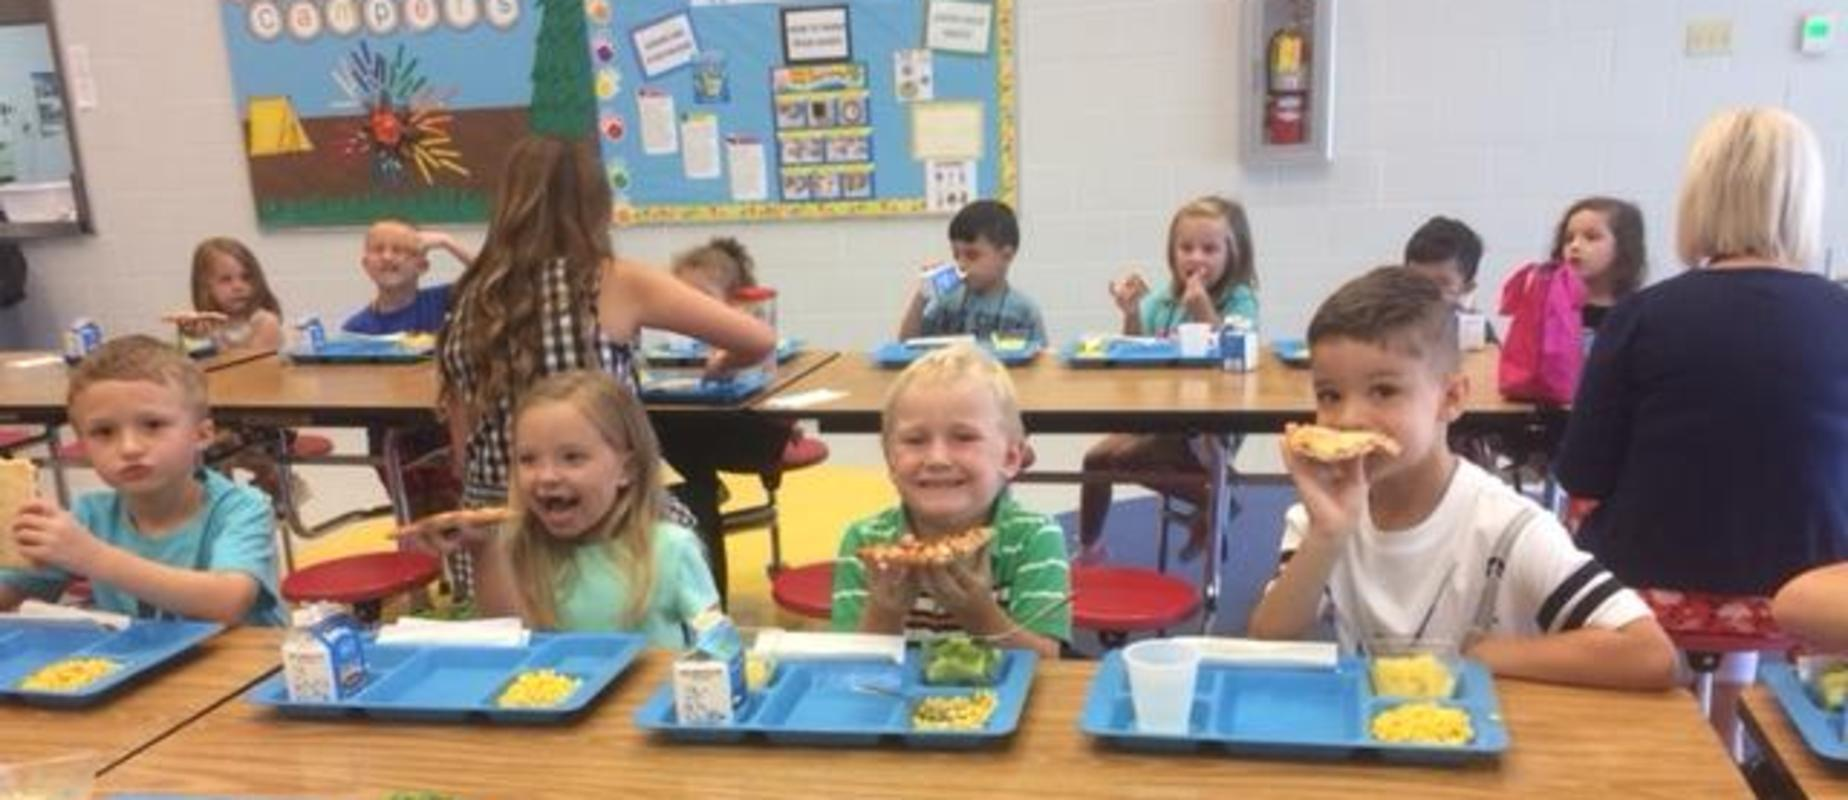 1st Day of School-Lunch